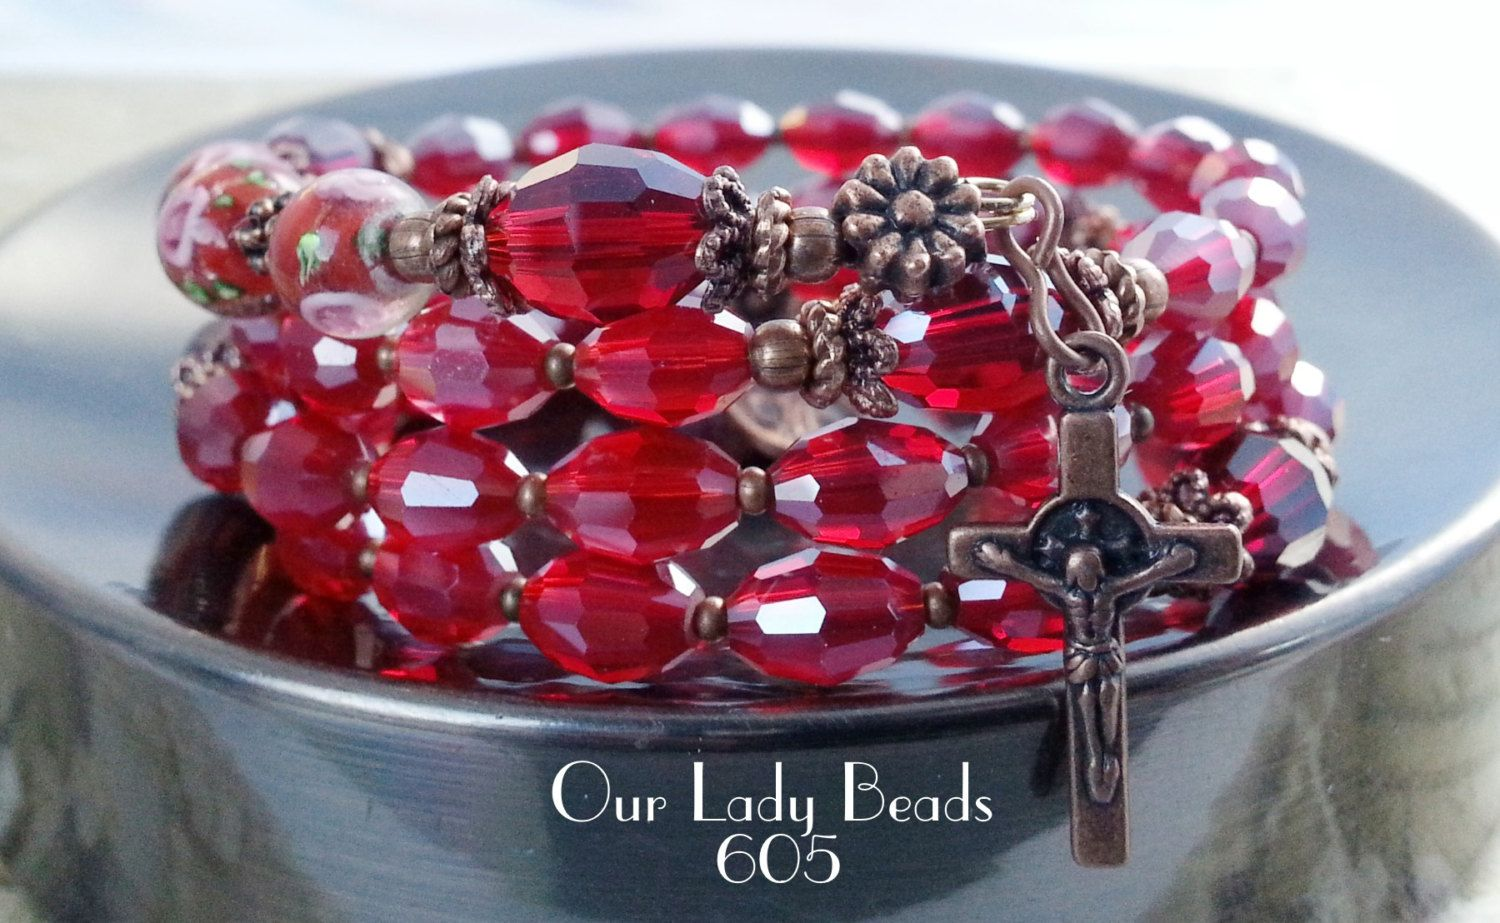 Rosary Bracelet Wrap,Dark Red Crystal Rosary,Religious Gift,Catholic Jewelry,Confirmation,First Communion,Gift for Her,by Our Lady Beads,605 by OURLADYBeads on Etsy